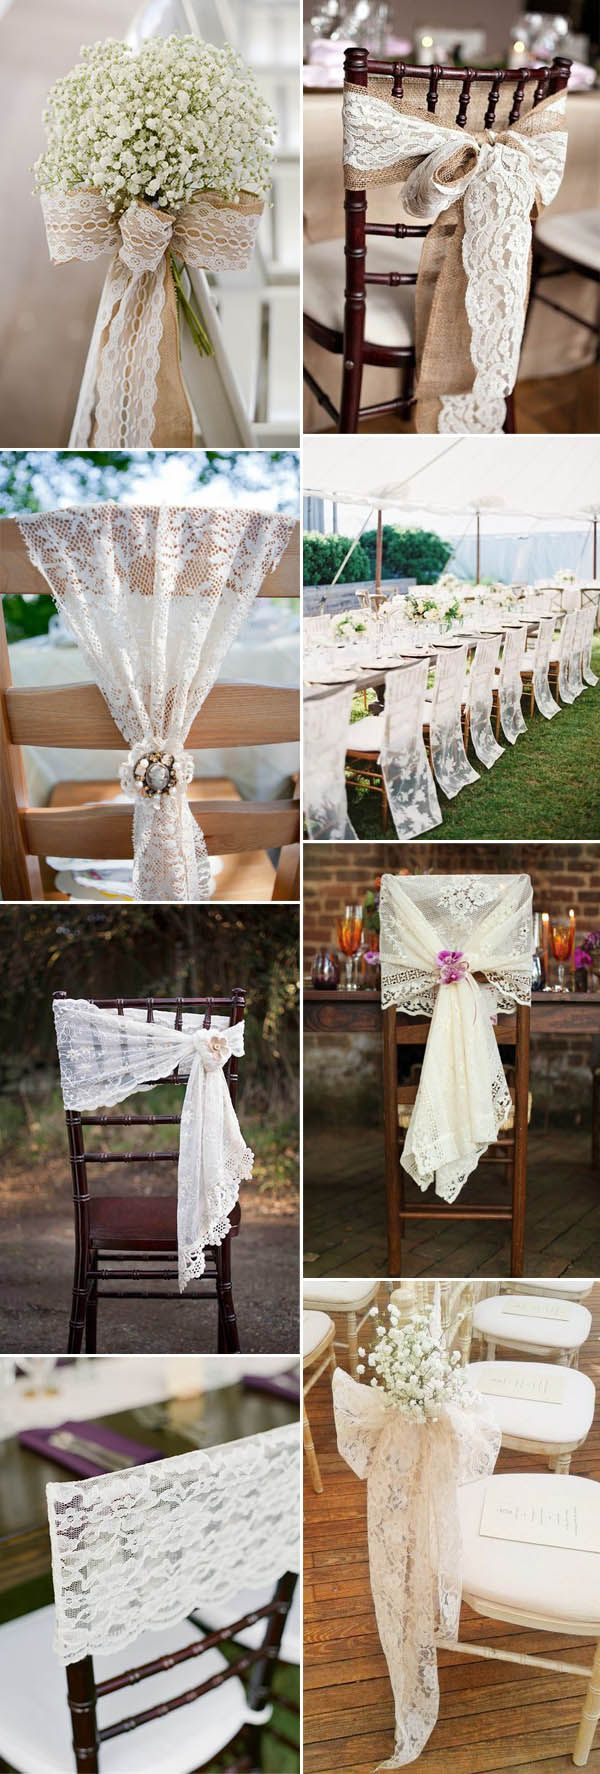 Diy rustic wedding decor ideas   Great Ideas to Incoporate Lace Into Your Vintage Weddings